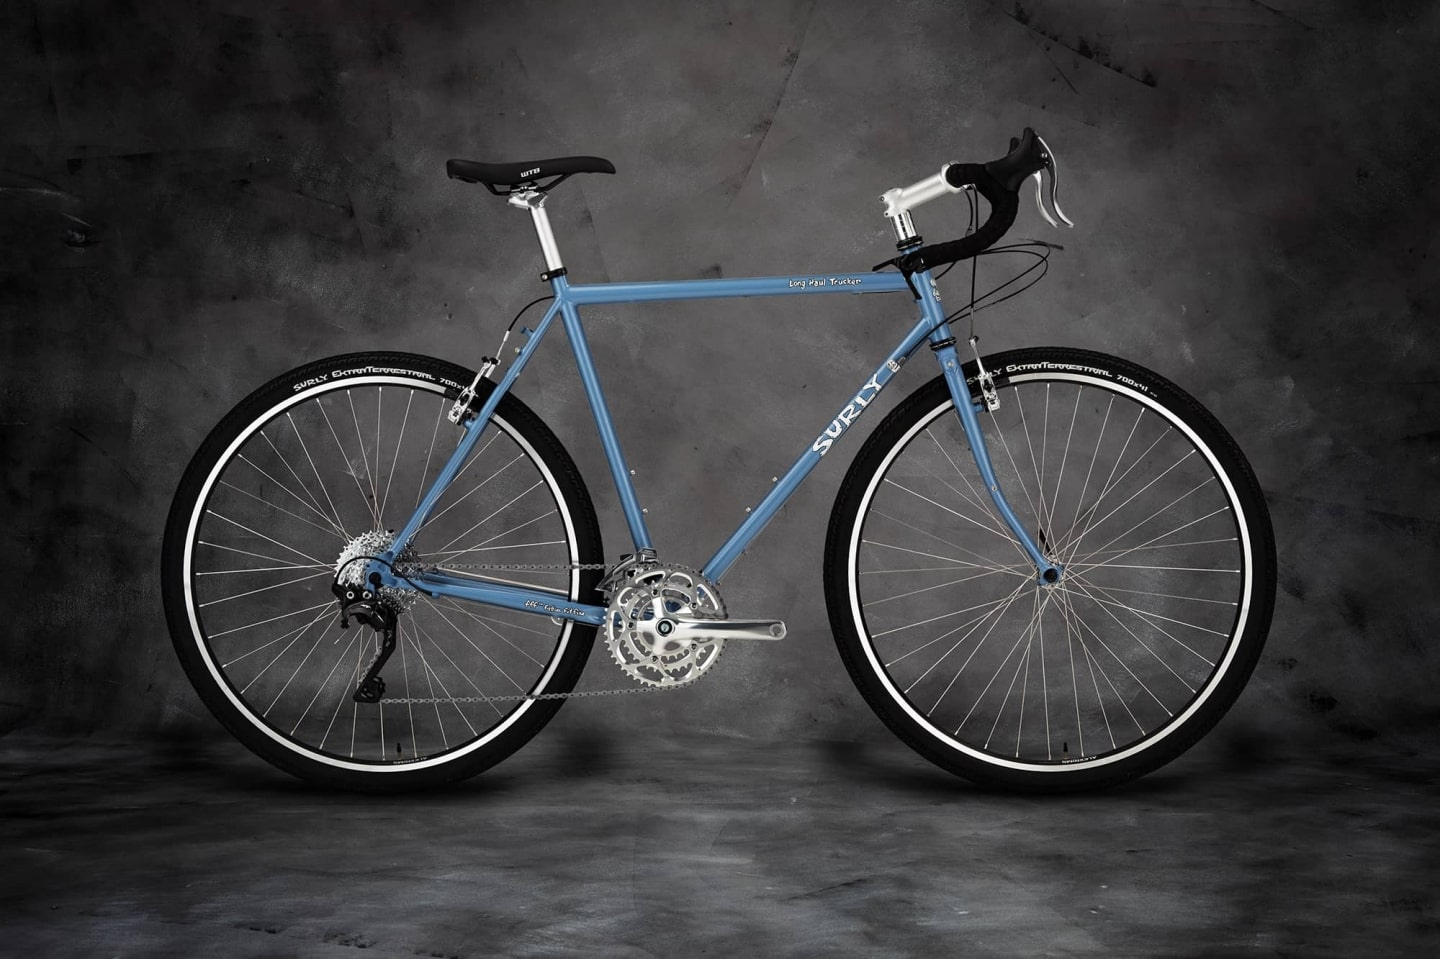 Surly_LHT_BK0417.jpg